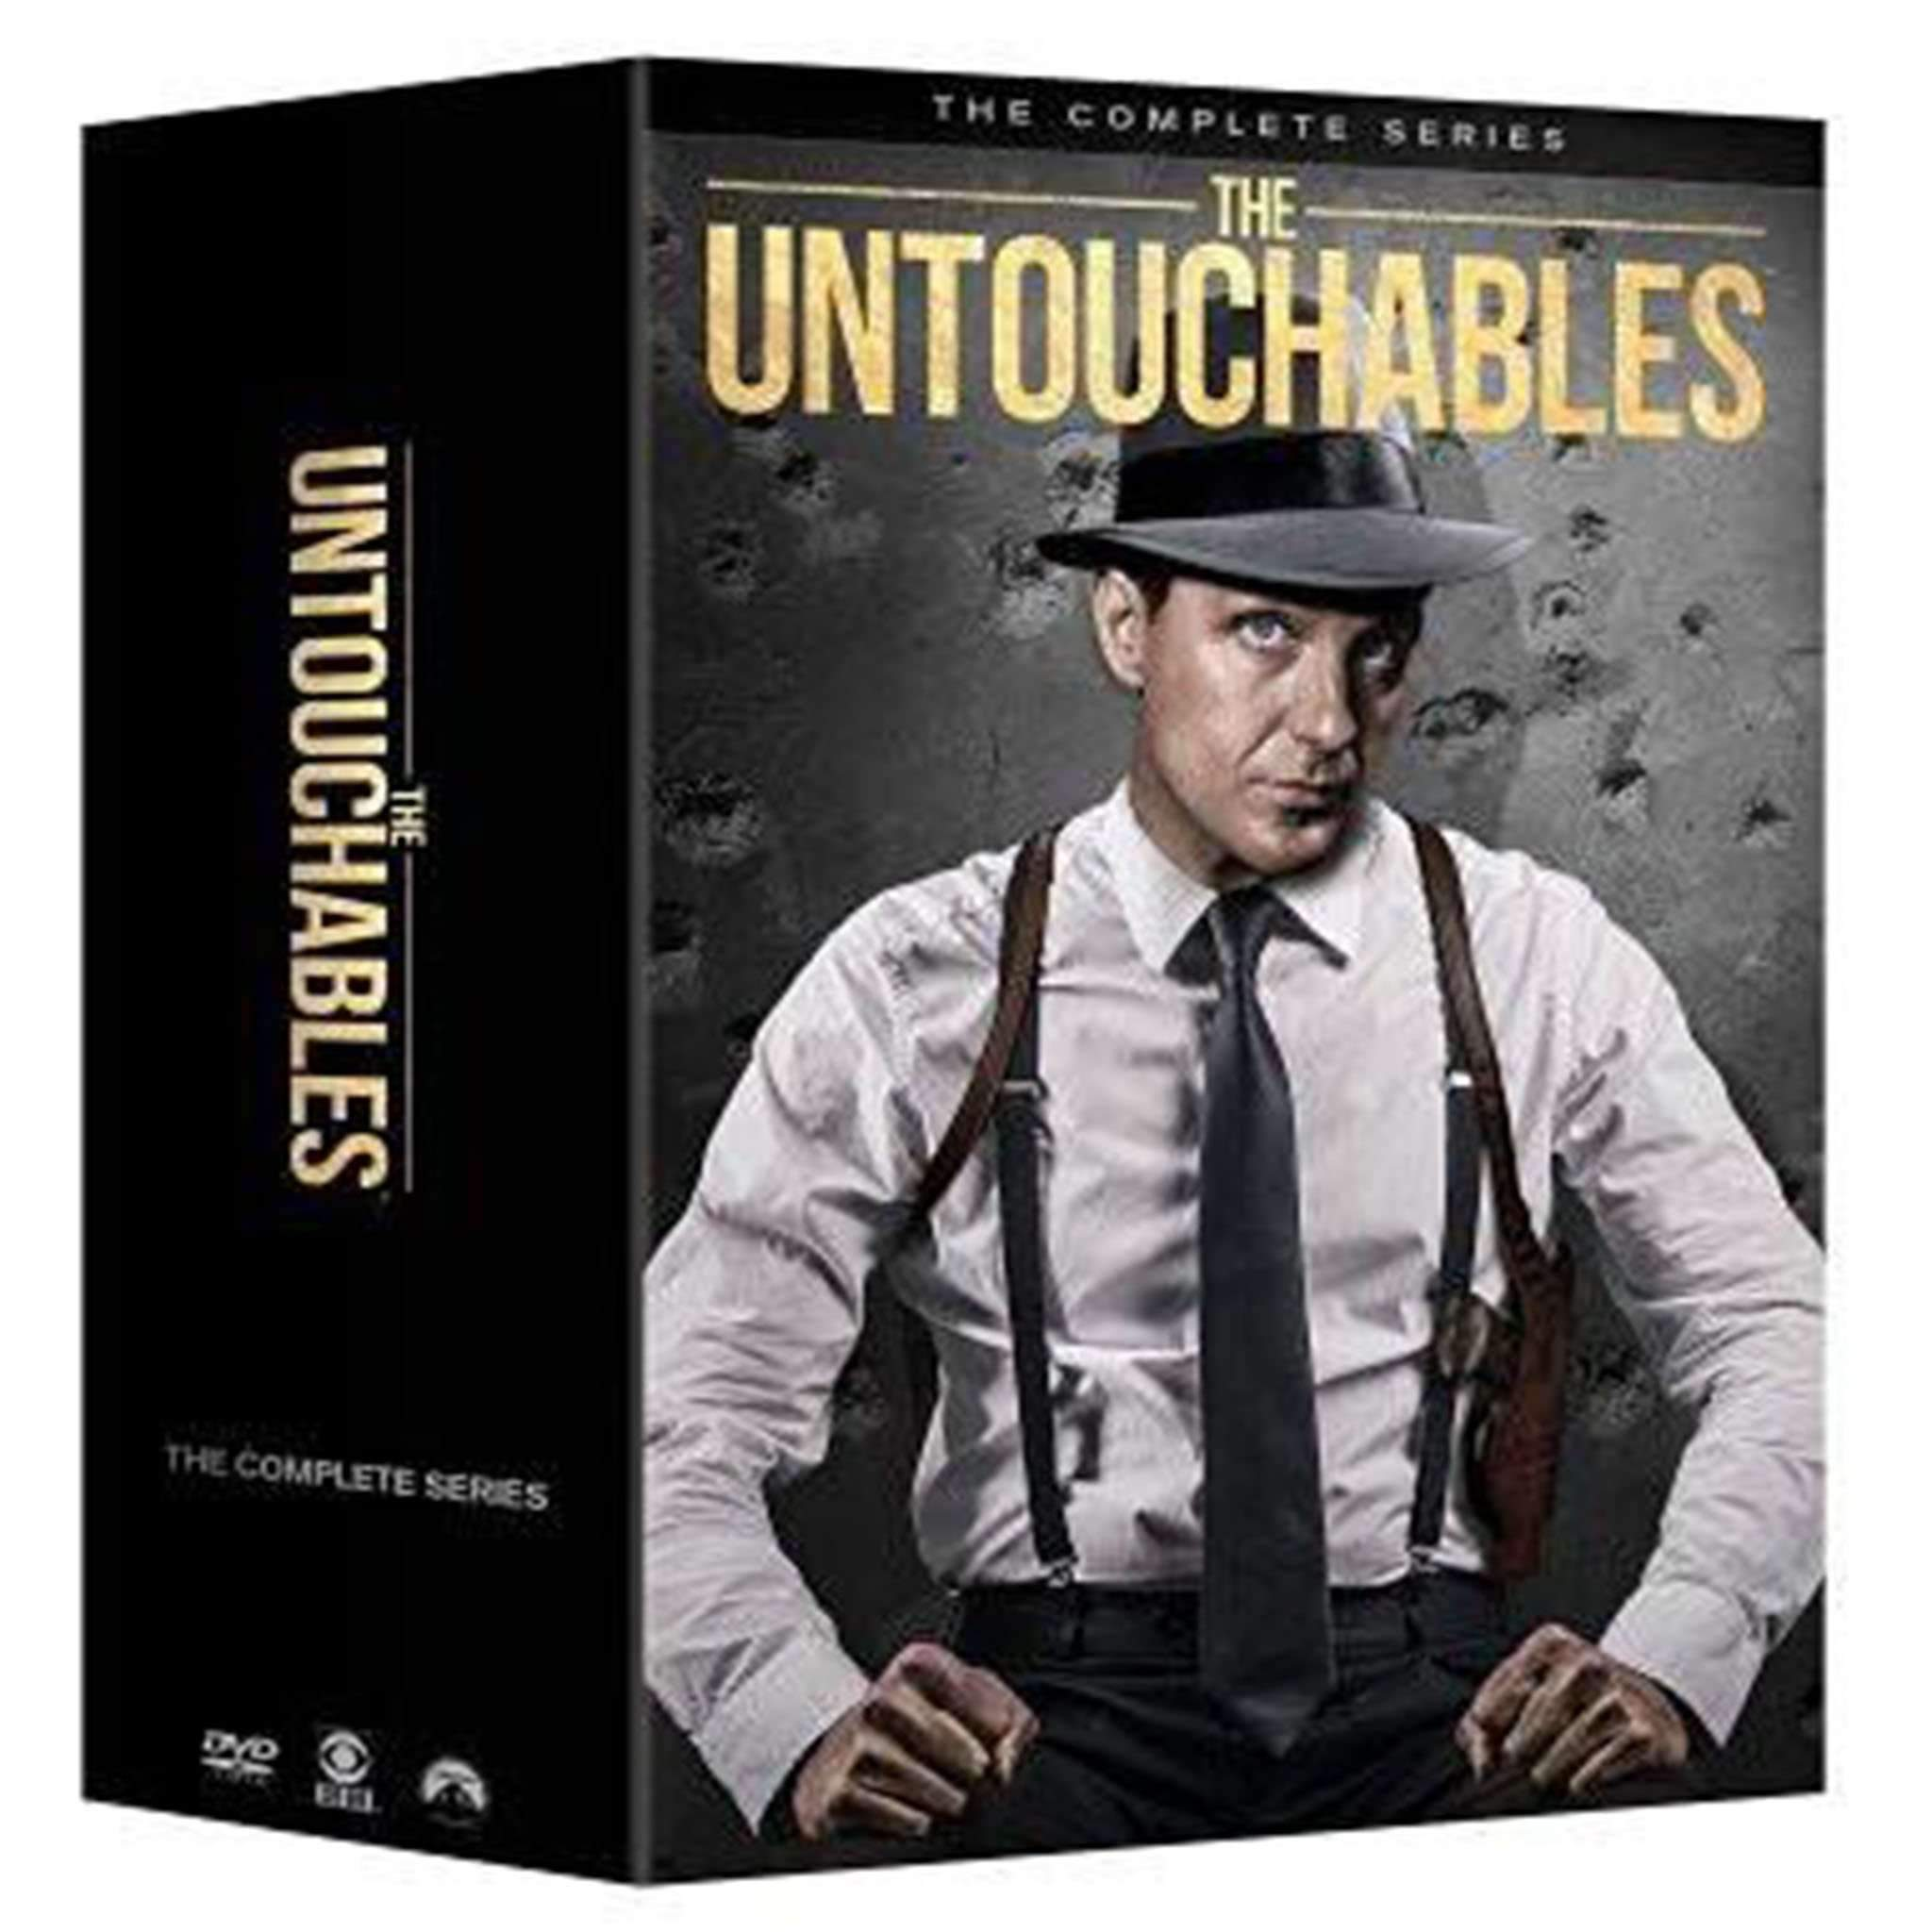 The Untouchables: The Complete Series (DVD) Paramount Home Entertainment DVDs & Blu-ray Discs > DVDs > Box Sets